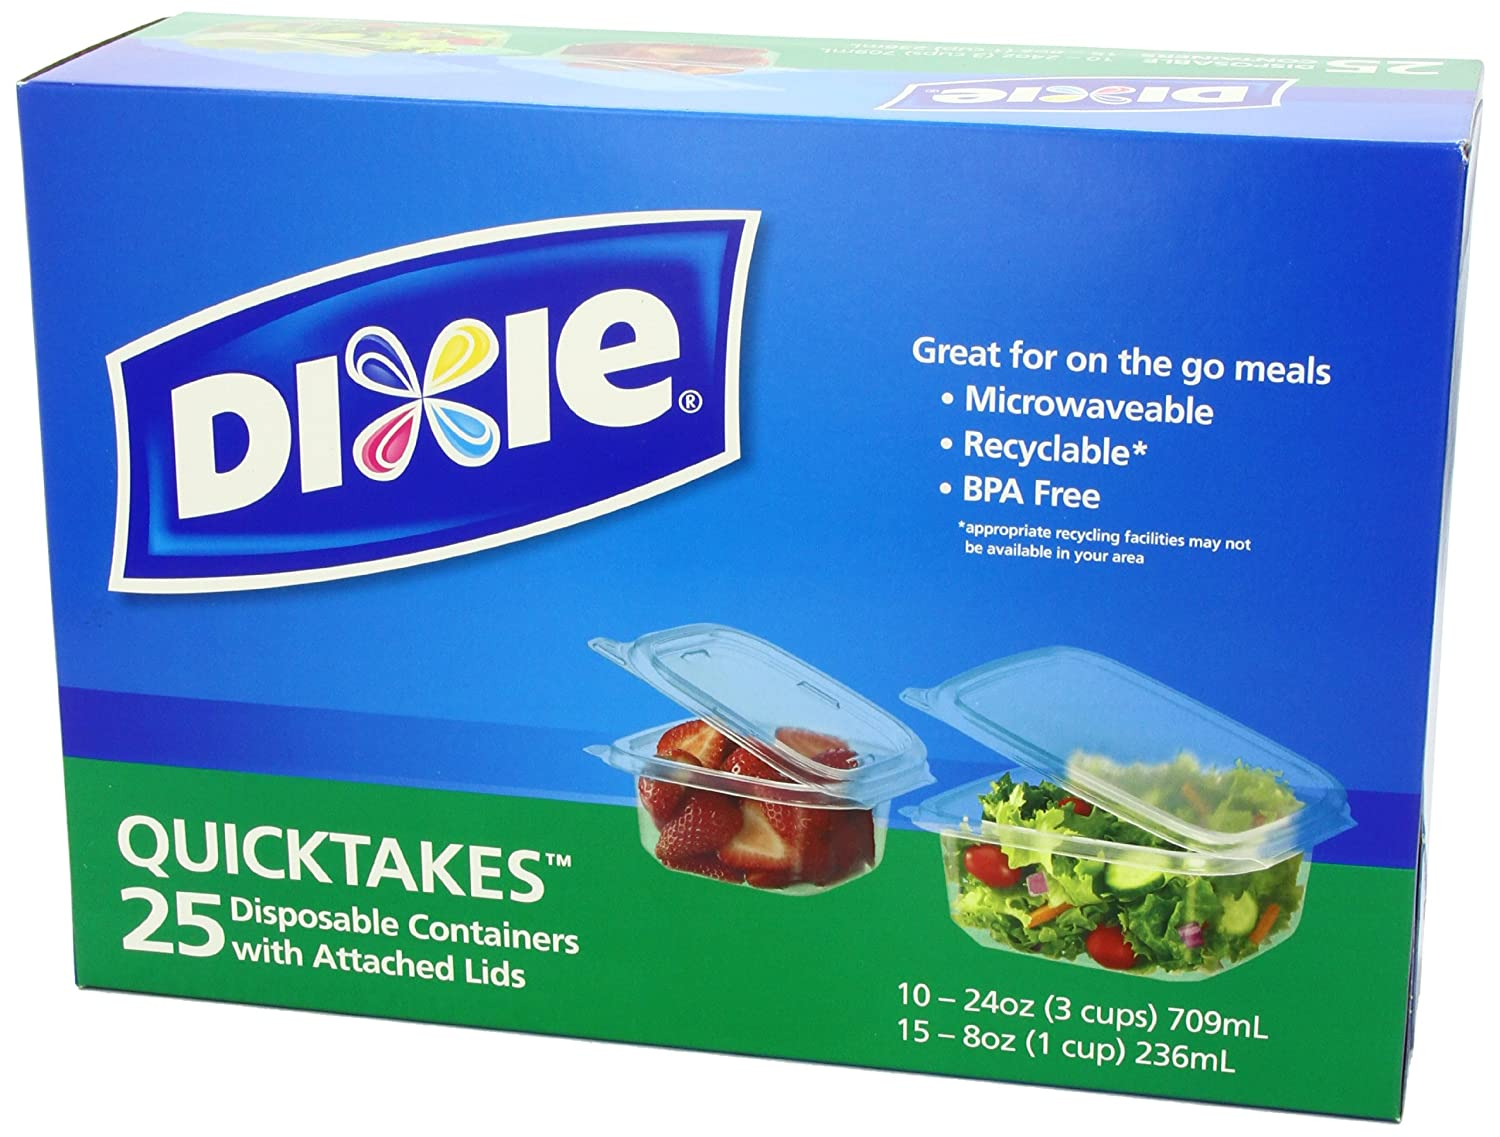 Lovely Amazon.com: Dixie Quicktakes Disposable Food Storage Containers With Attached  Lids, 25 Count: Health U0026 Personal Care